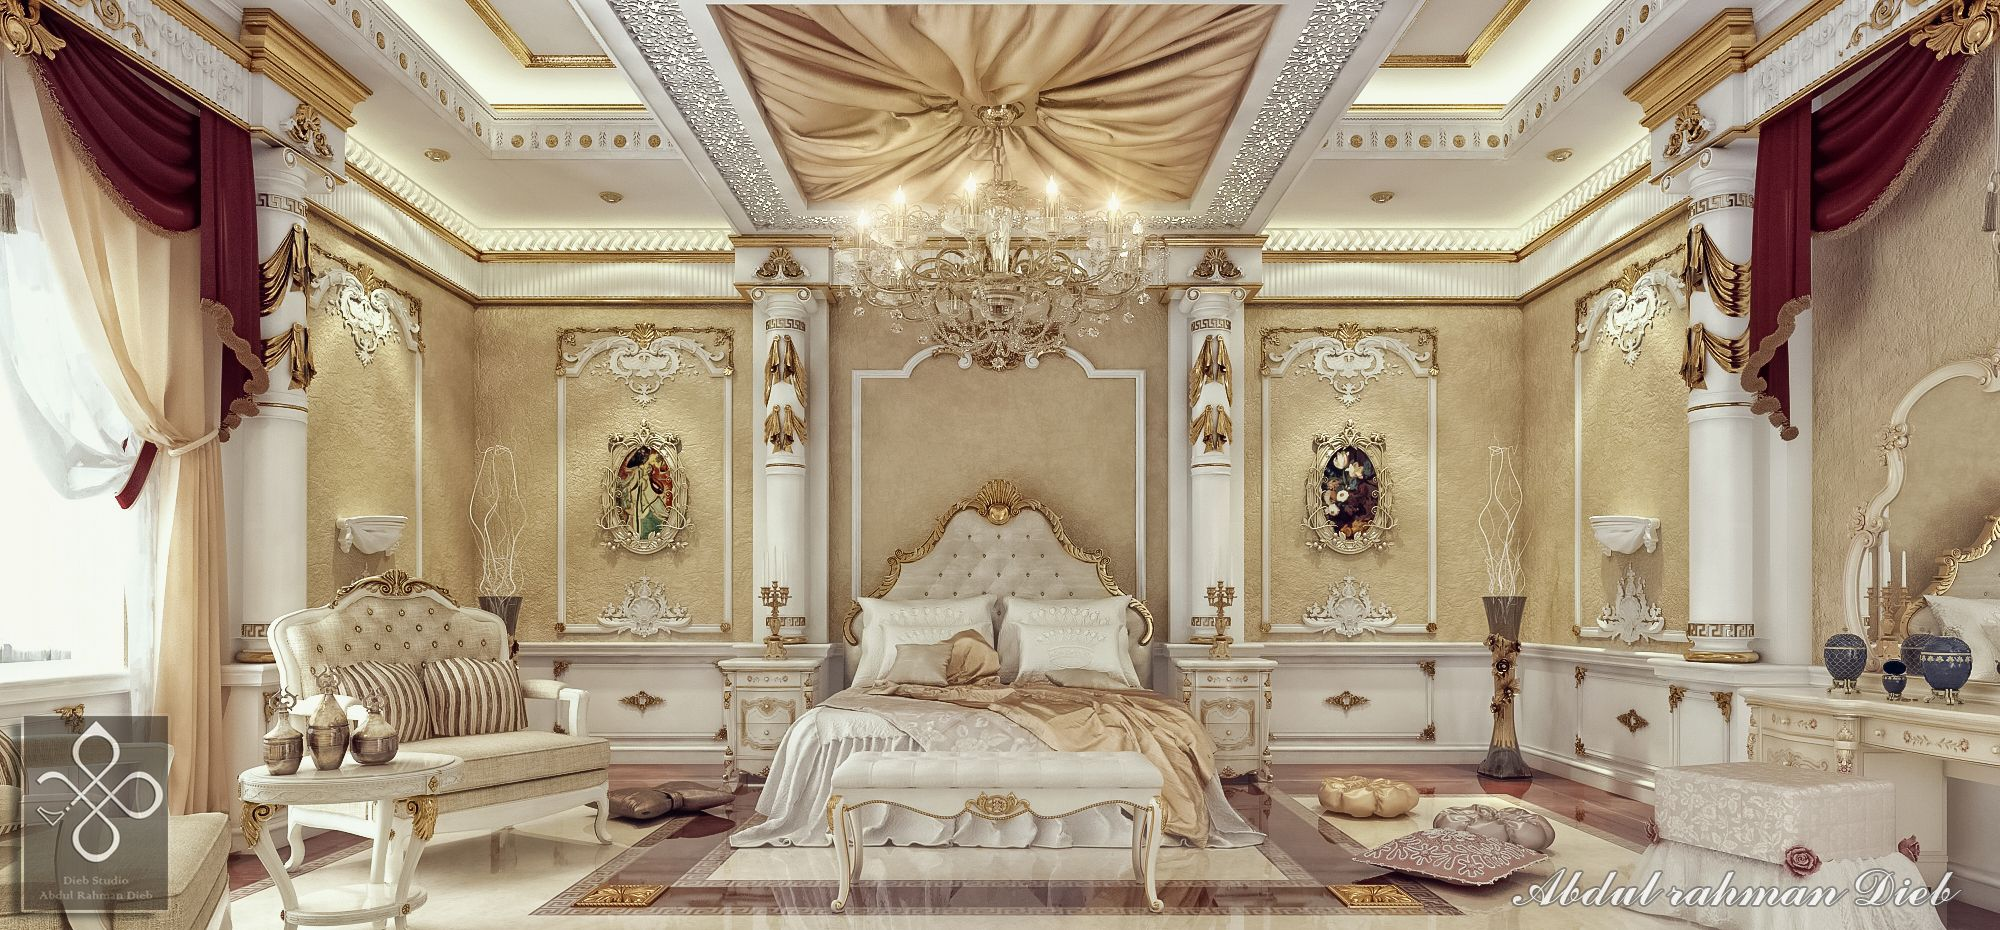 Royal bedroom 3d interiors pinterest royal bedroom for Room interior images